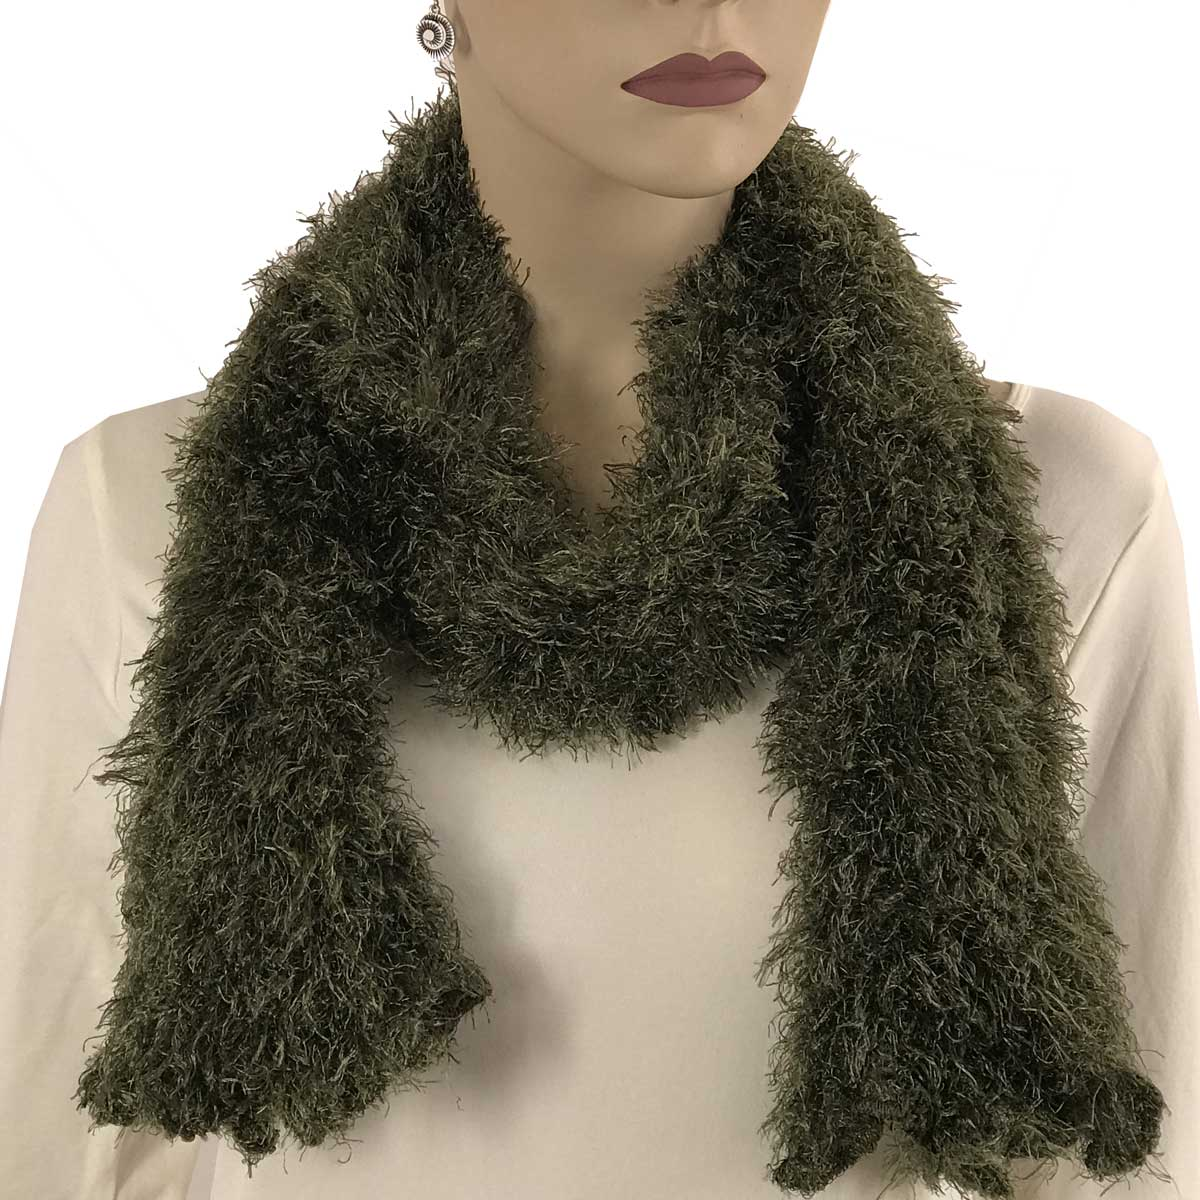 Wholesale Original Moa Boa Magic Scarves  Olive Moa Boa Magic Scarf -